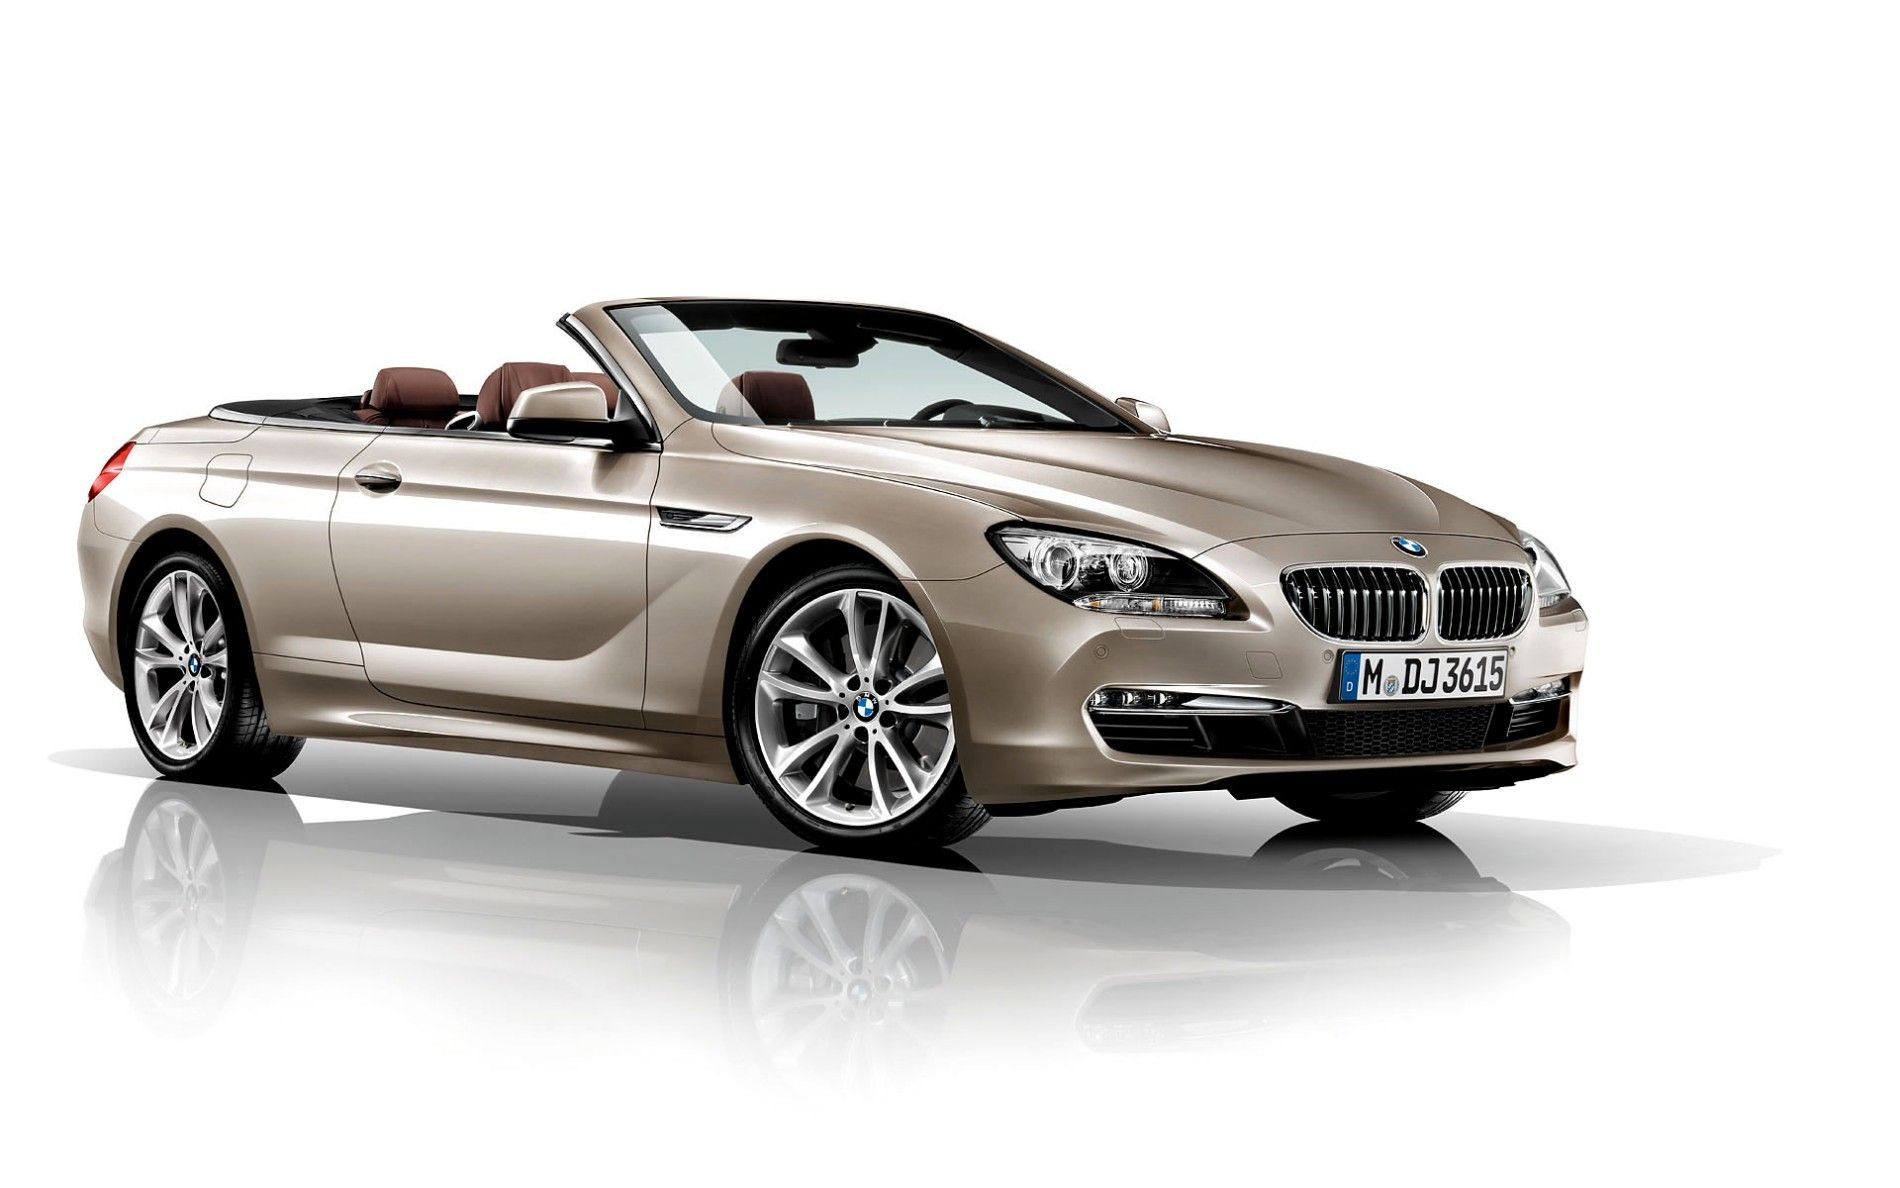 Bmw 640i And 650i Convertible Full Specs Bmw 6 Series Bmw